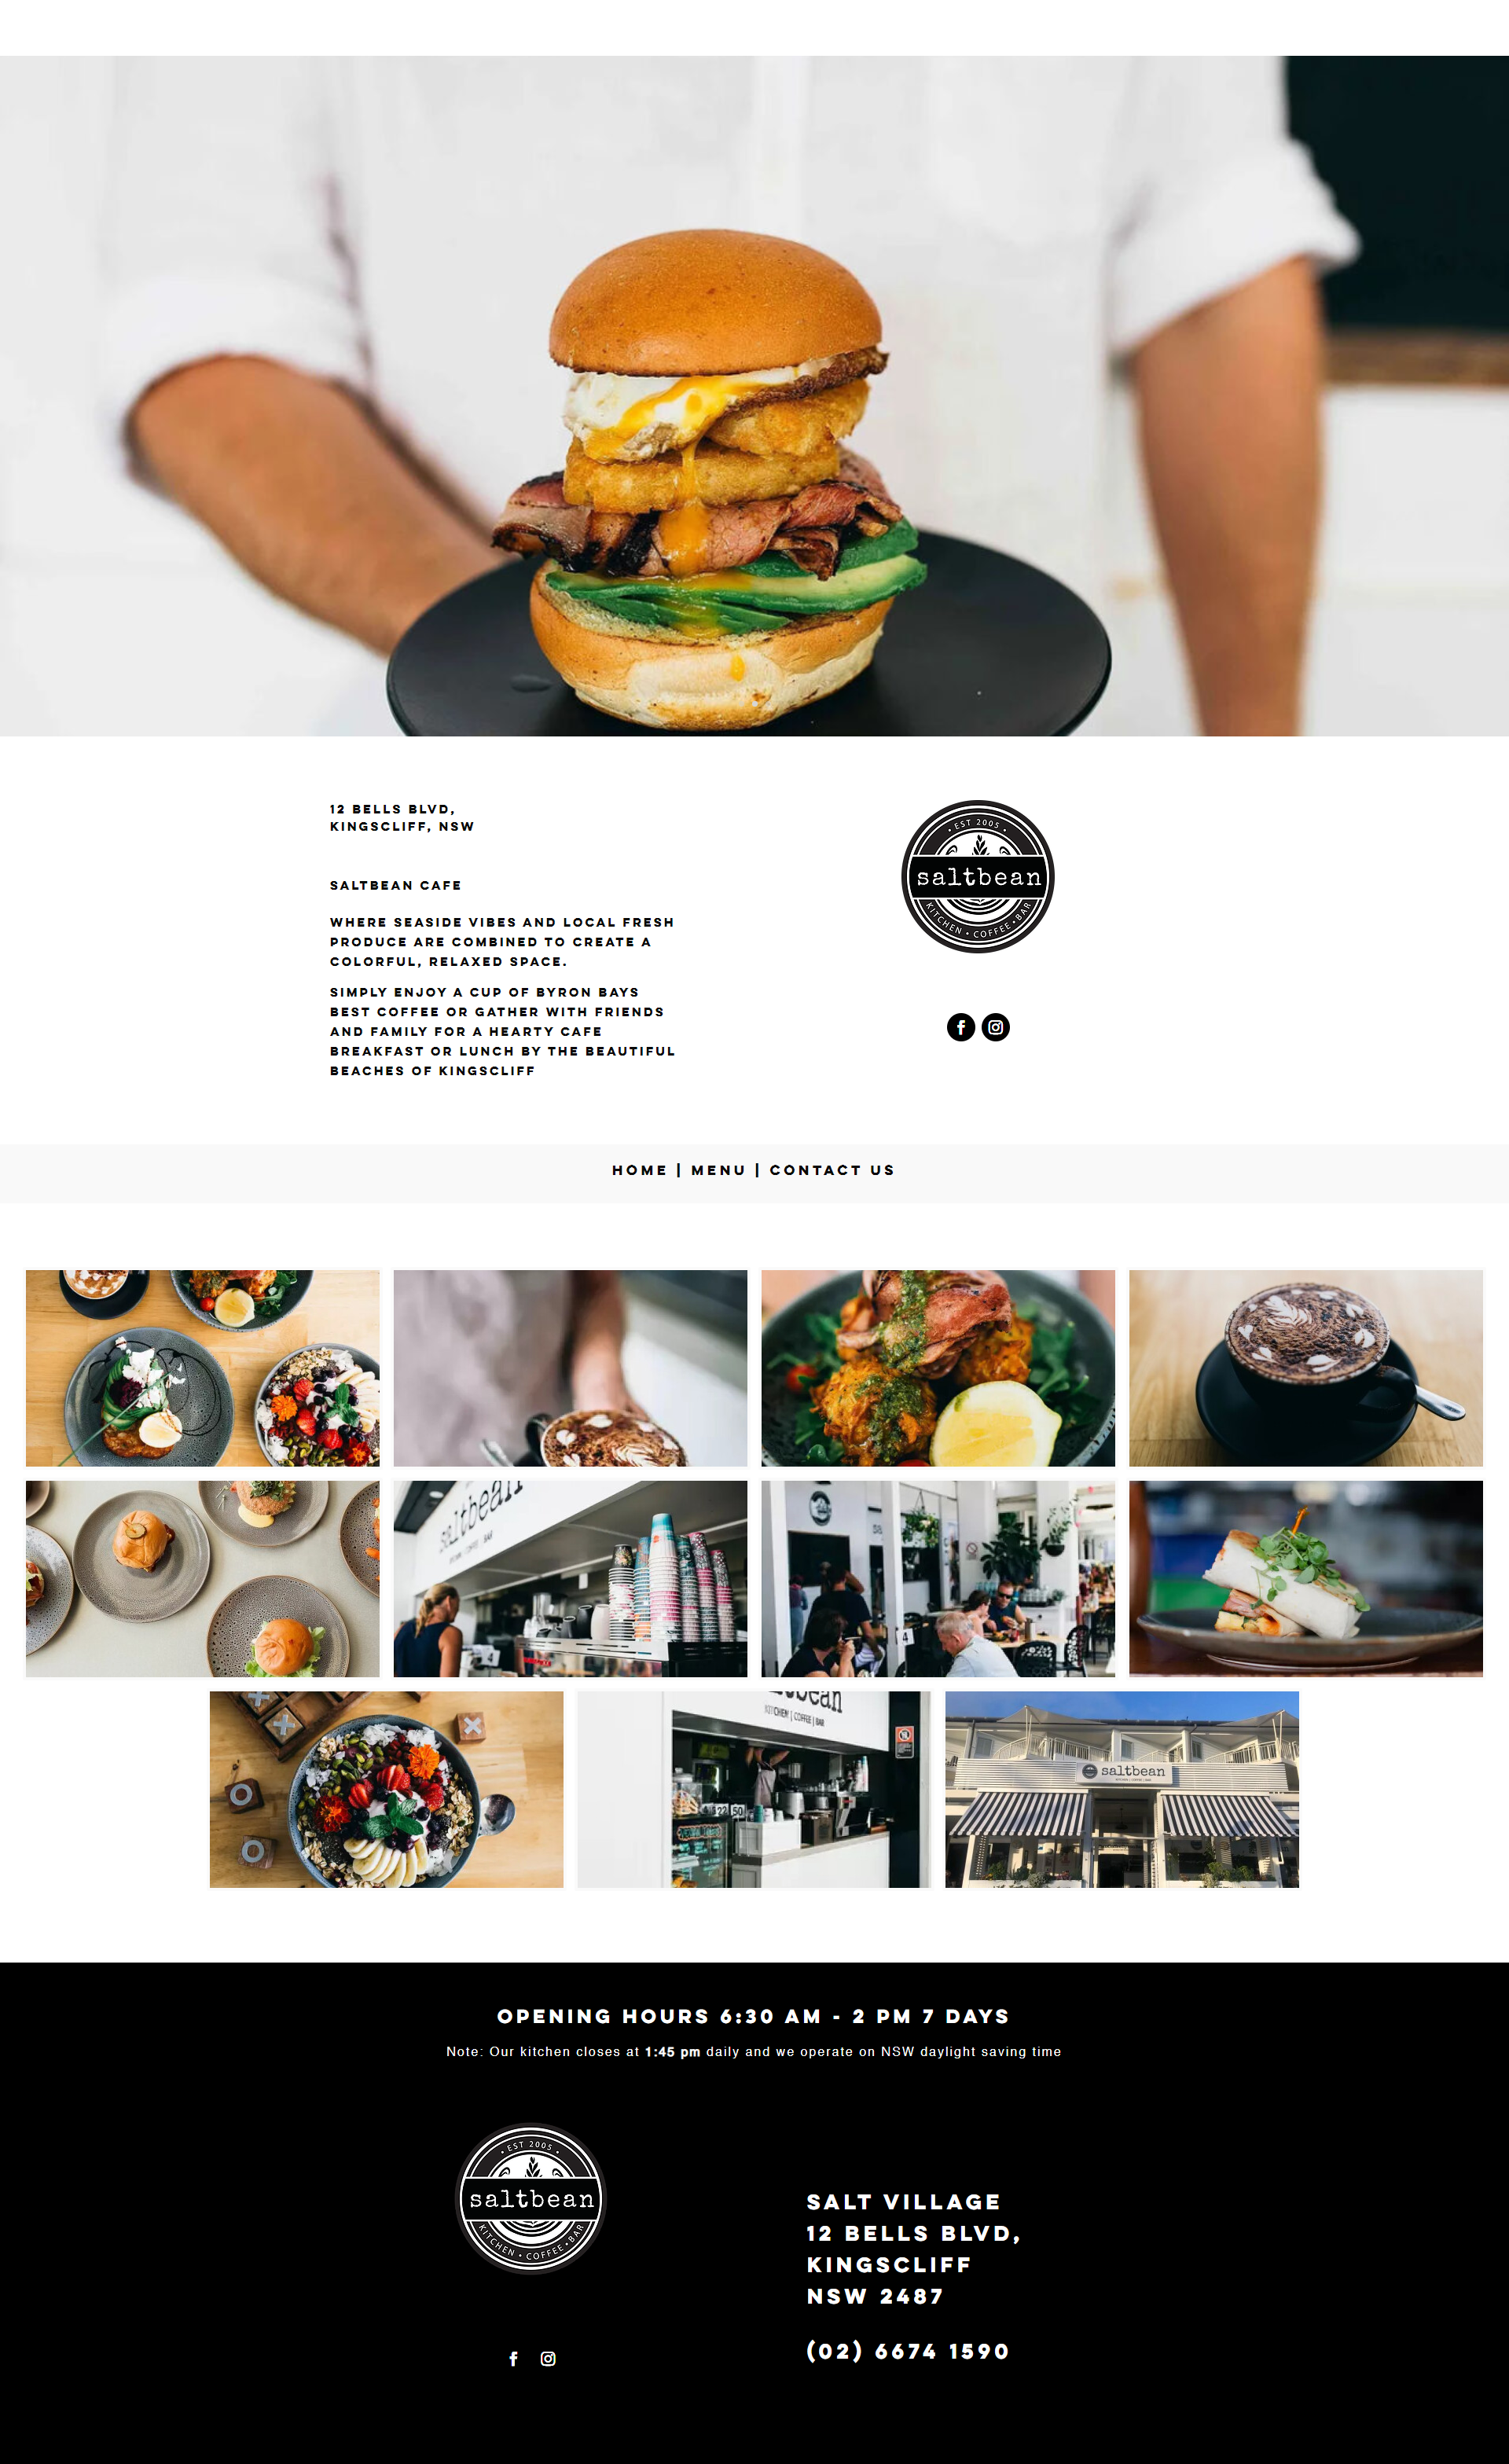 The Restaurant Website - Web Development Services